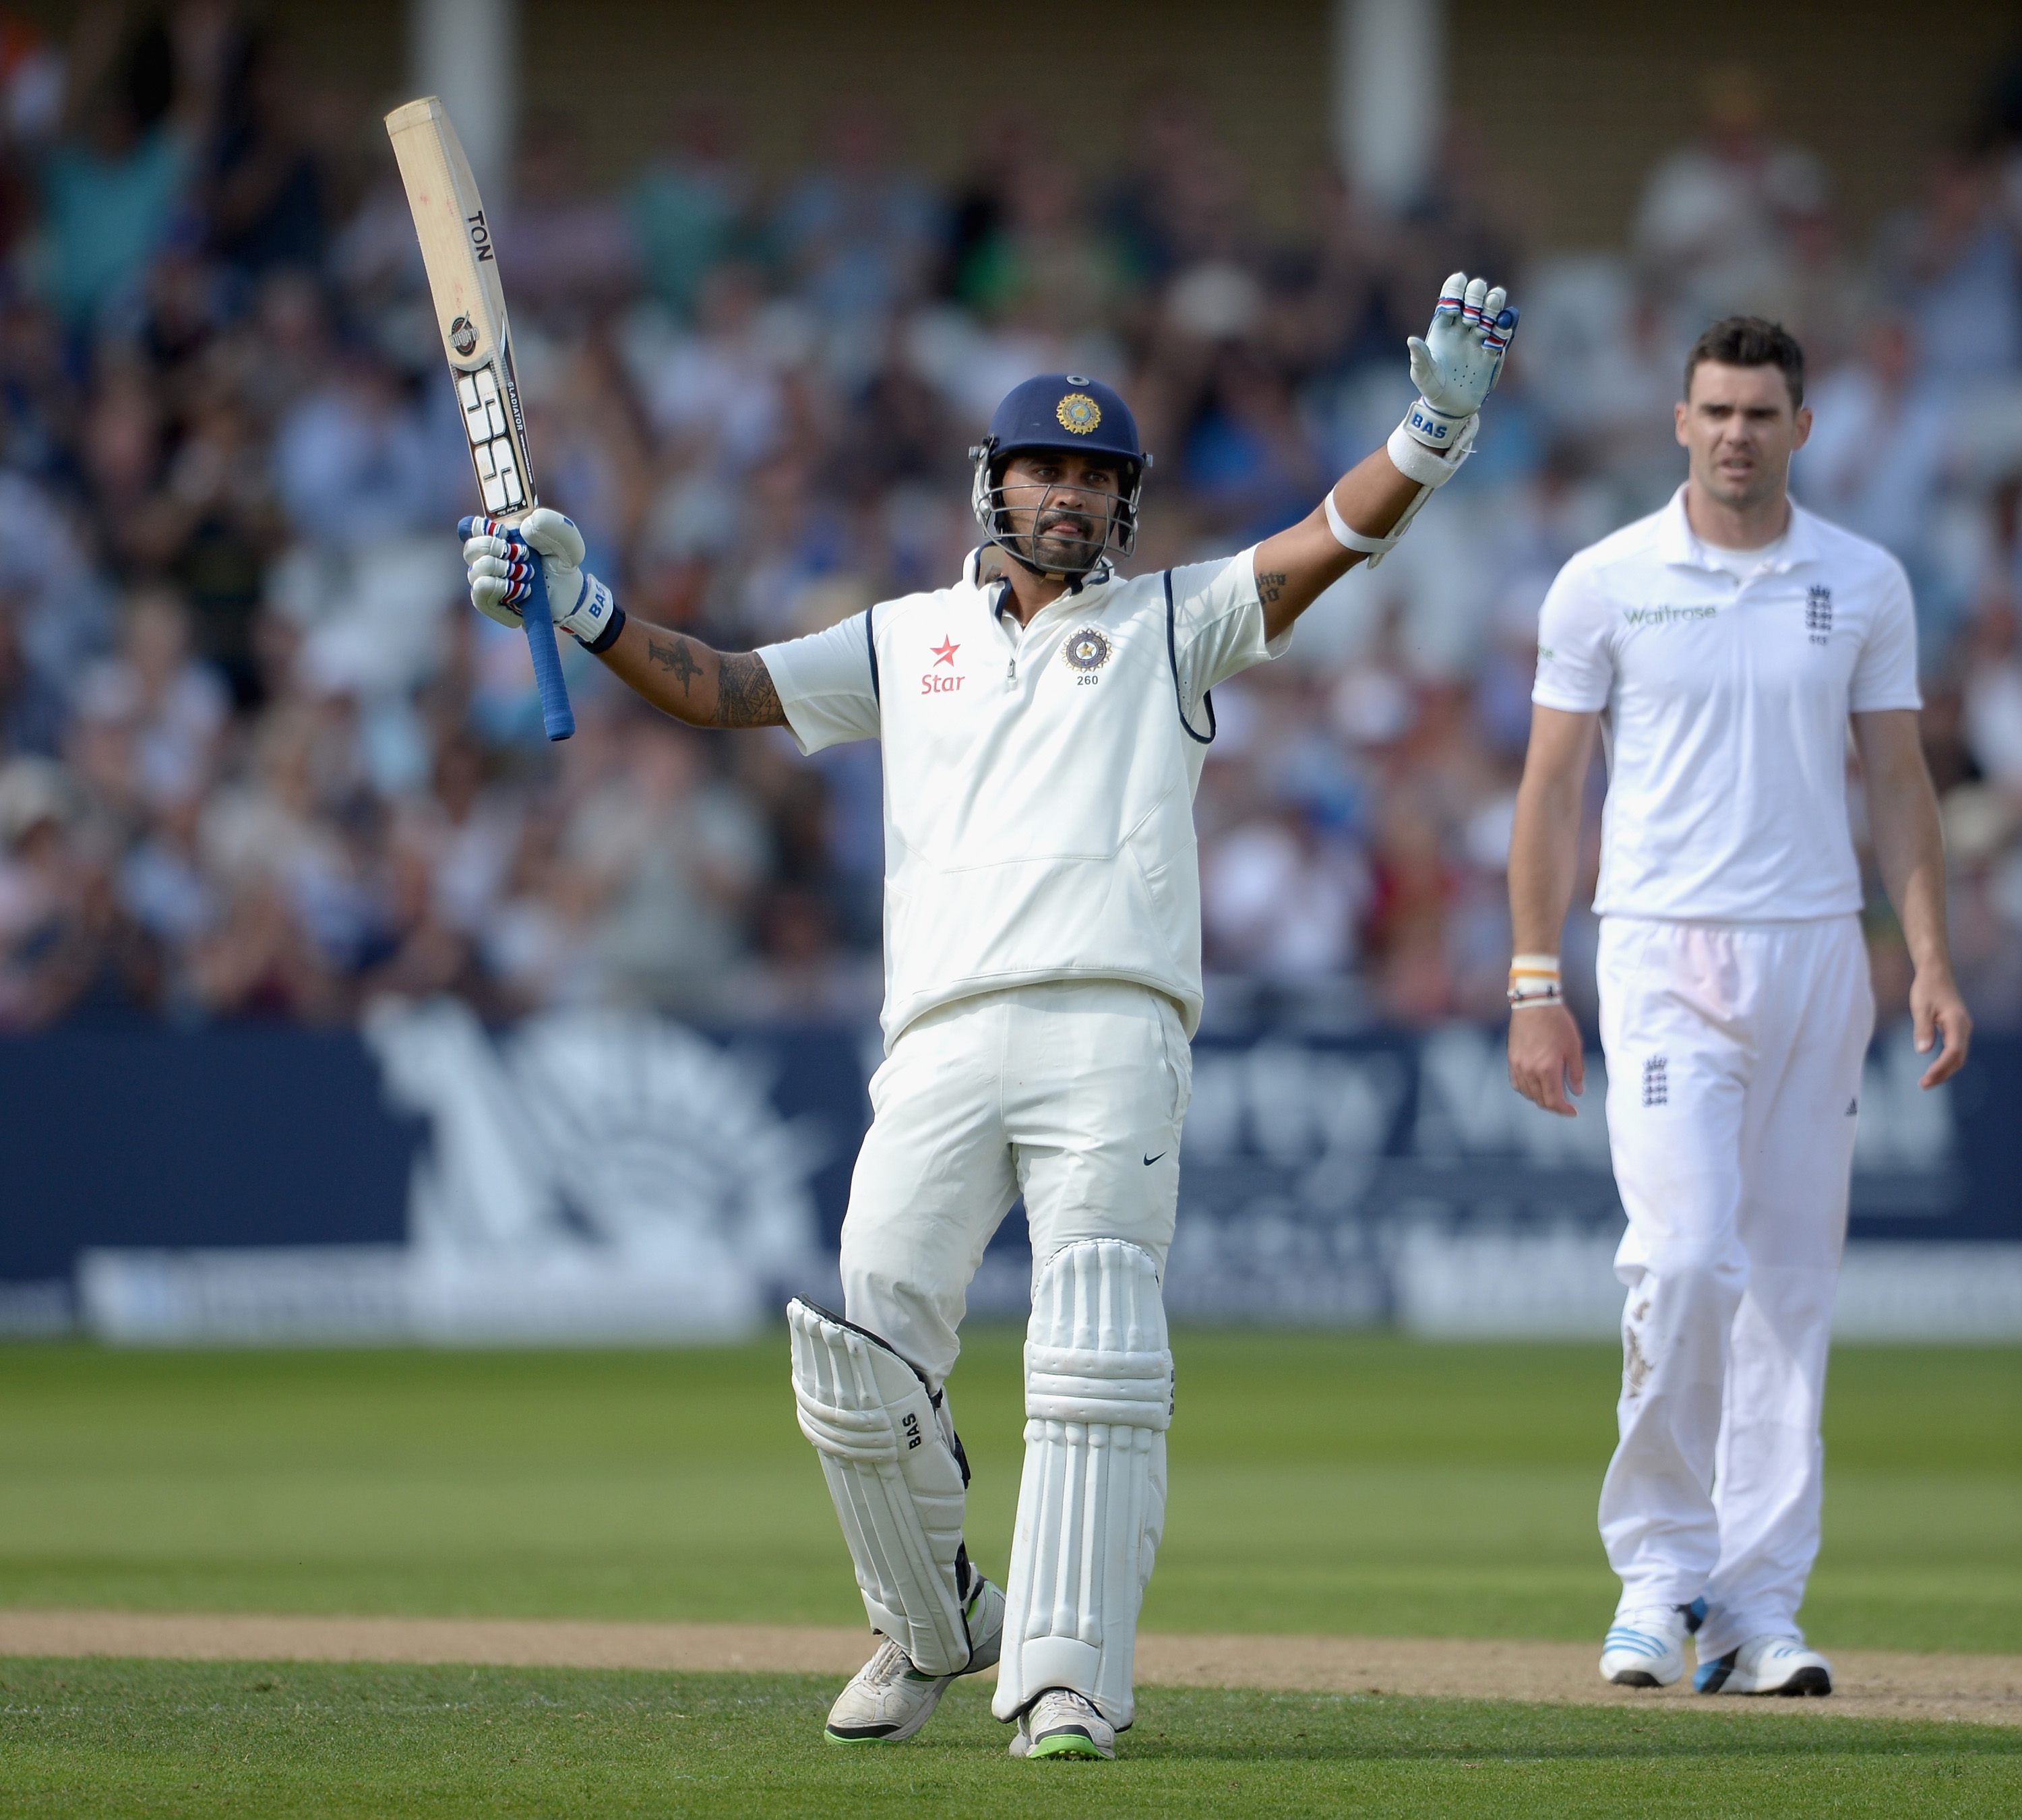 Murali Vijay celebrates his classy century during the first Test against England at Trent Bridge in 2014 | Getty